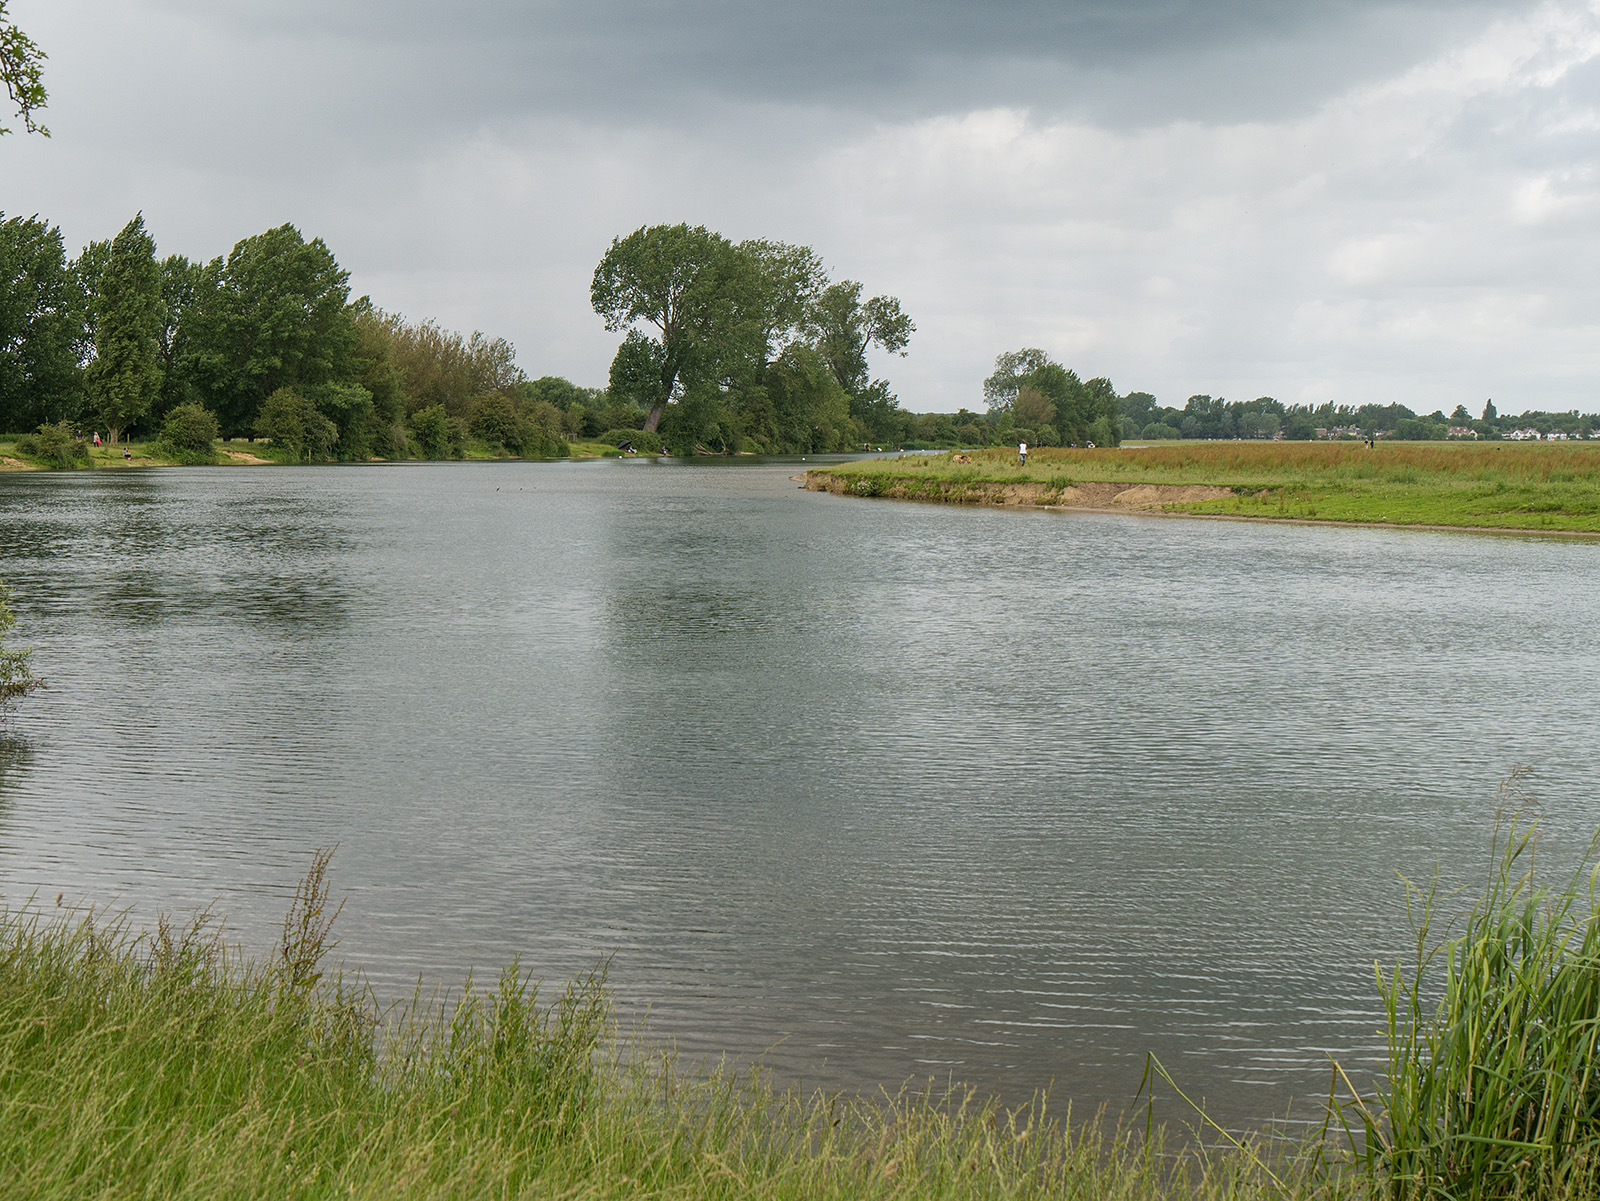 Curve of the river near Binsey